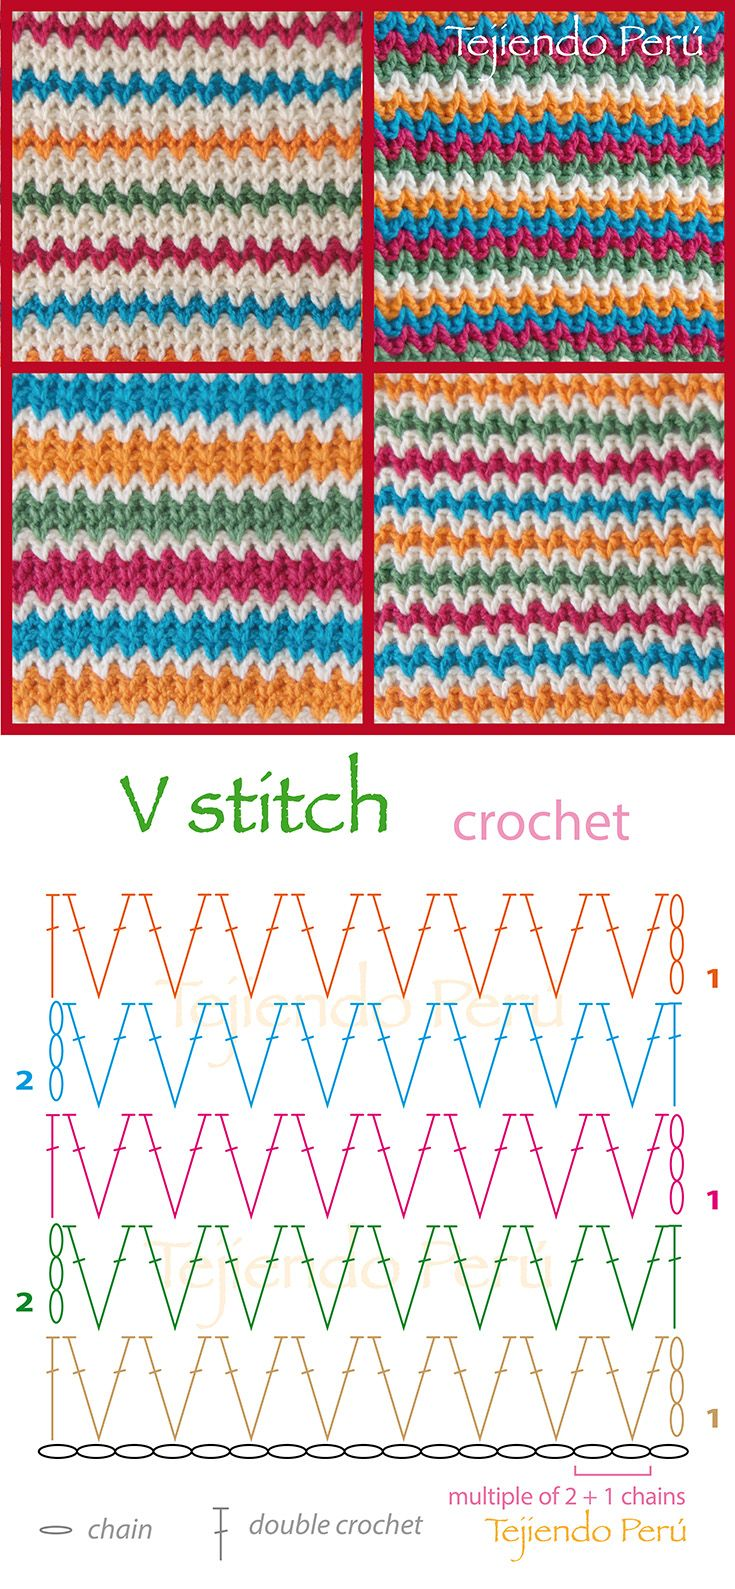 Crochet Double Stitch Diagram : 1000+ ideas about Crochet Diagram on Pinterest Crochet ...